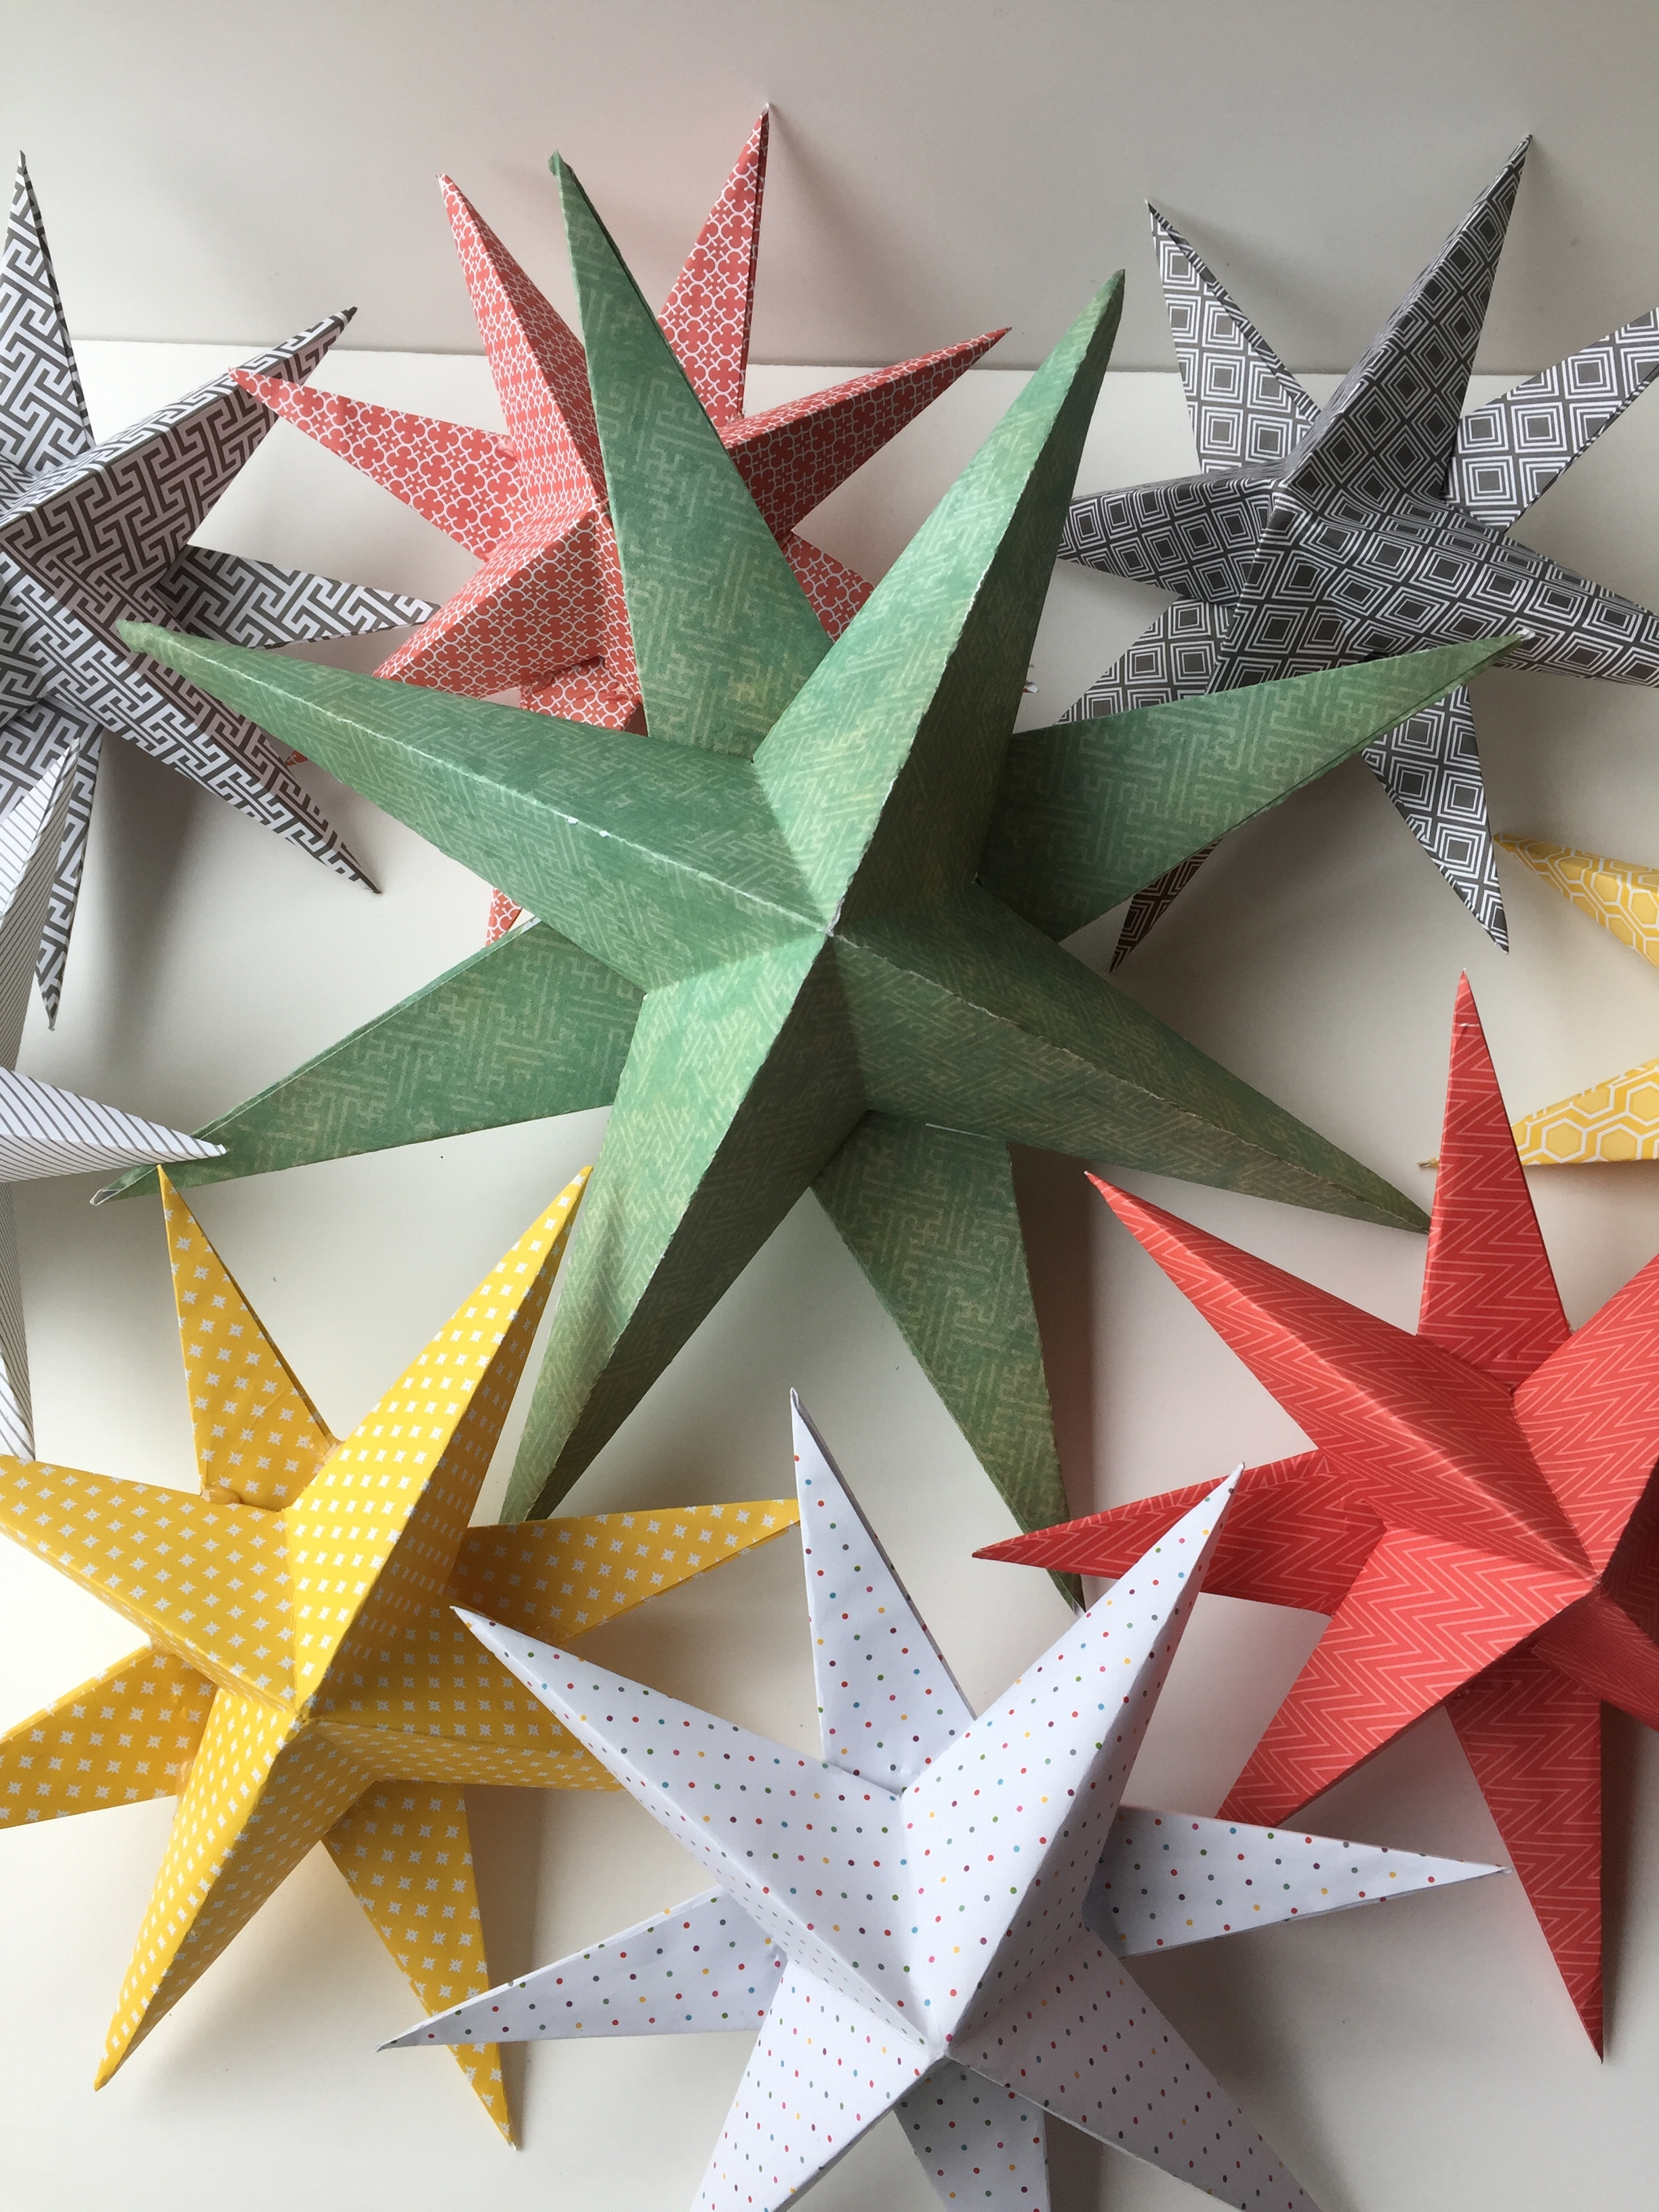 Paper Stars - Holiday decorations. We will make colorful 3 dimensional stars. You will go home with several sizes of stars and the knowledge to make many more at home. You will be amazed at how simple these are.Cost - $20 per person